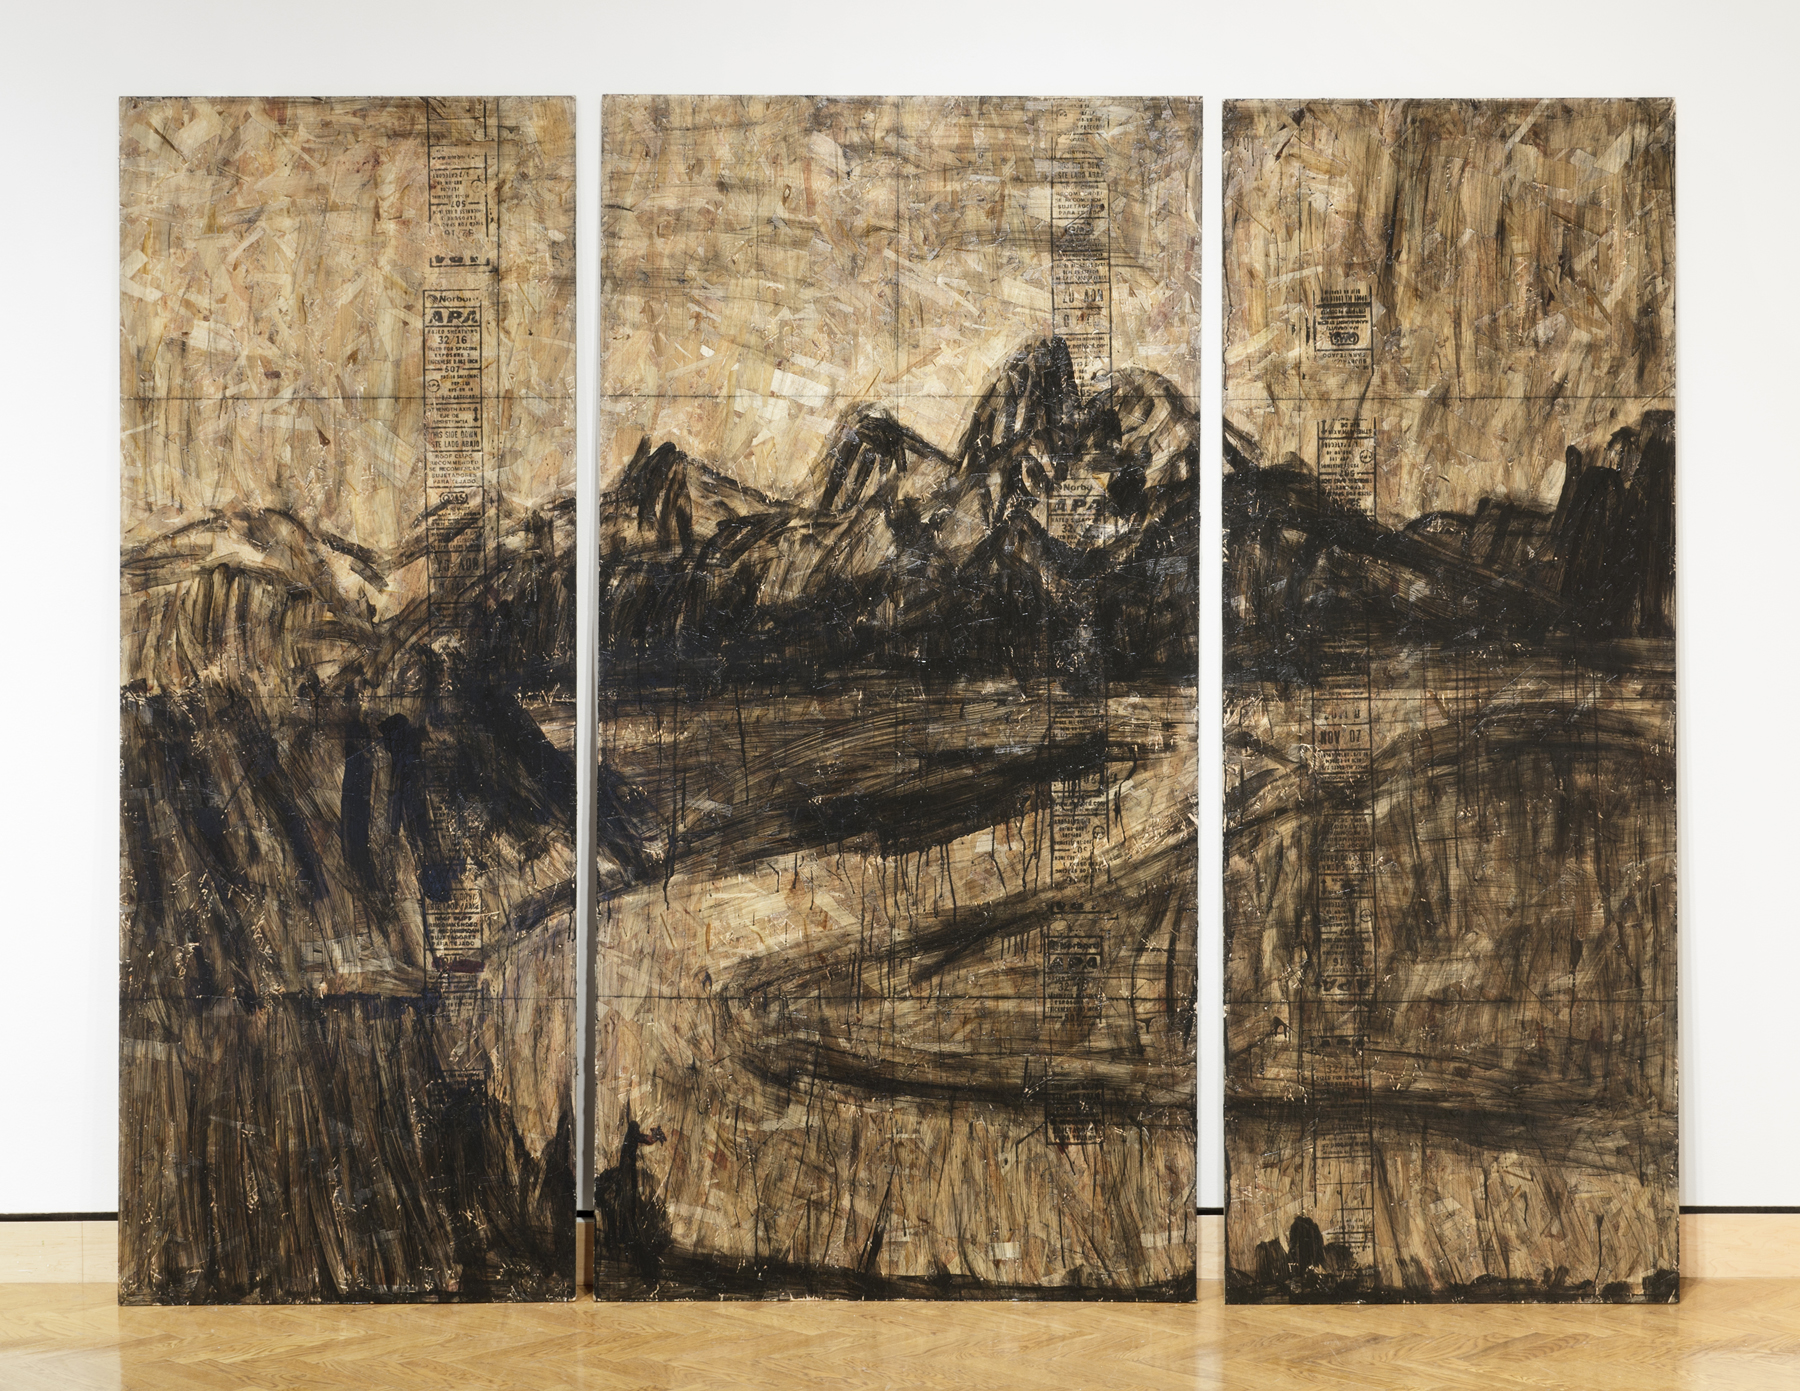 The Tetons and the Snake River (after Ansel Adams)  Acrylic on OSB, 2012.  96 by 120 inches.